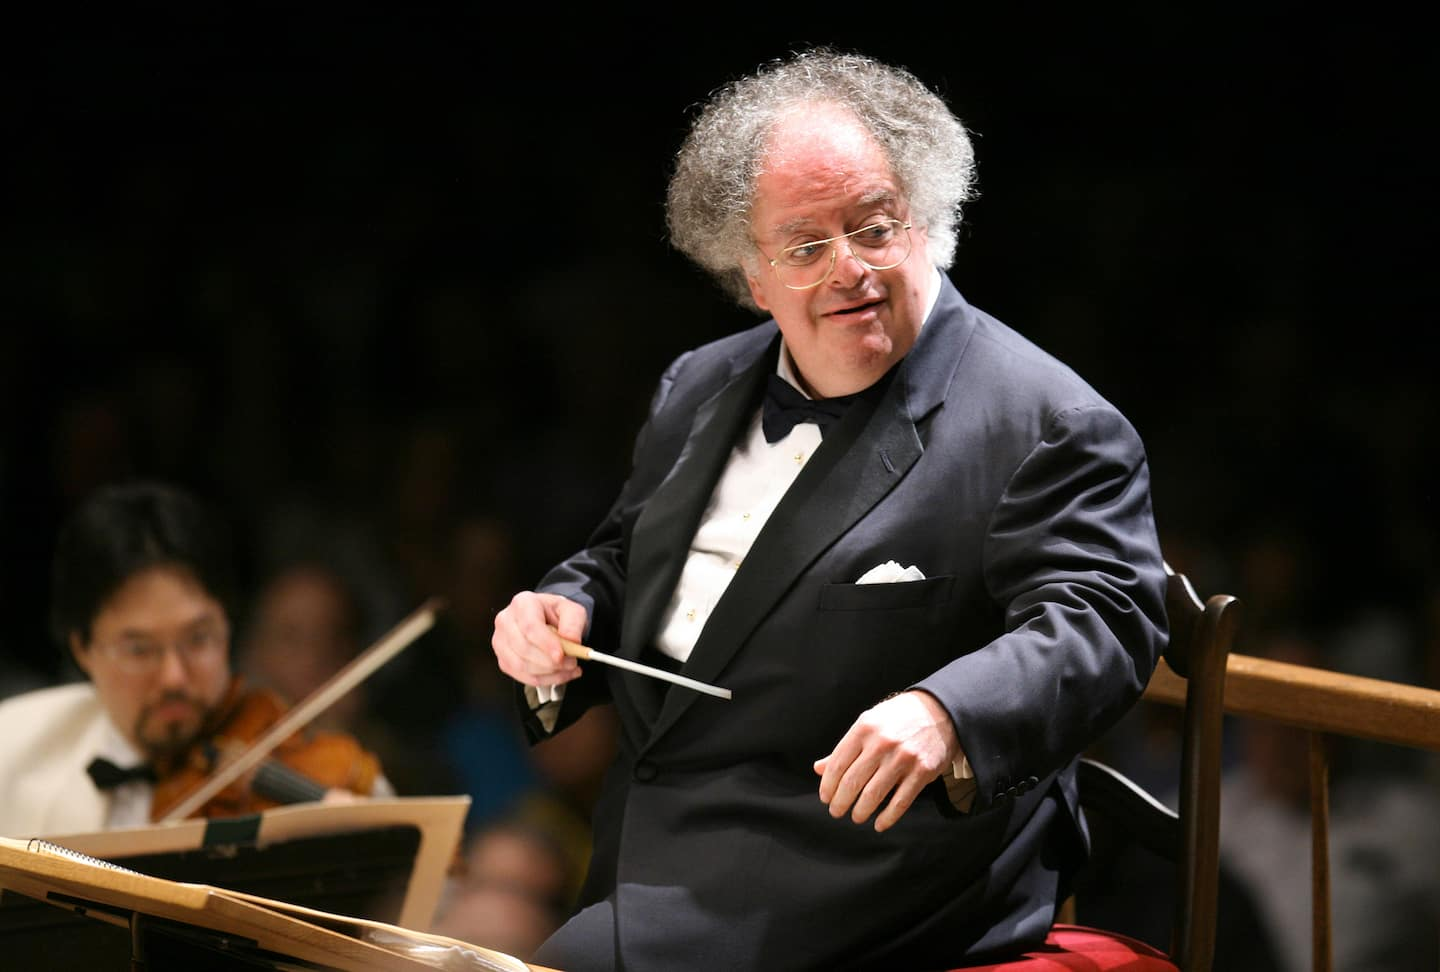 James Levine, acclaimed Metropolitan Opera conductor who faced abuse allegations, dies at 77